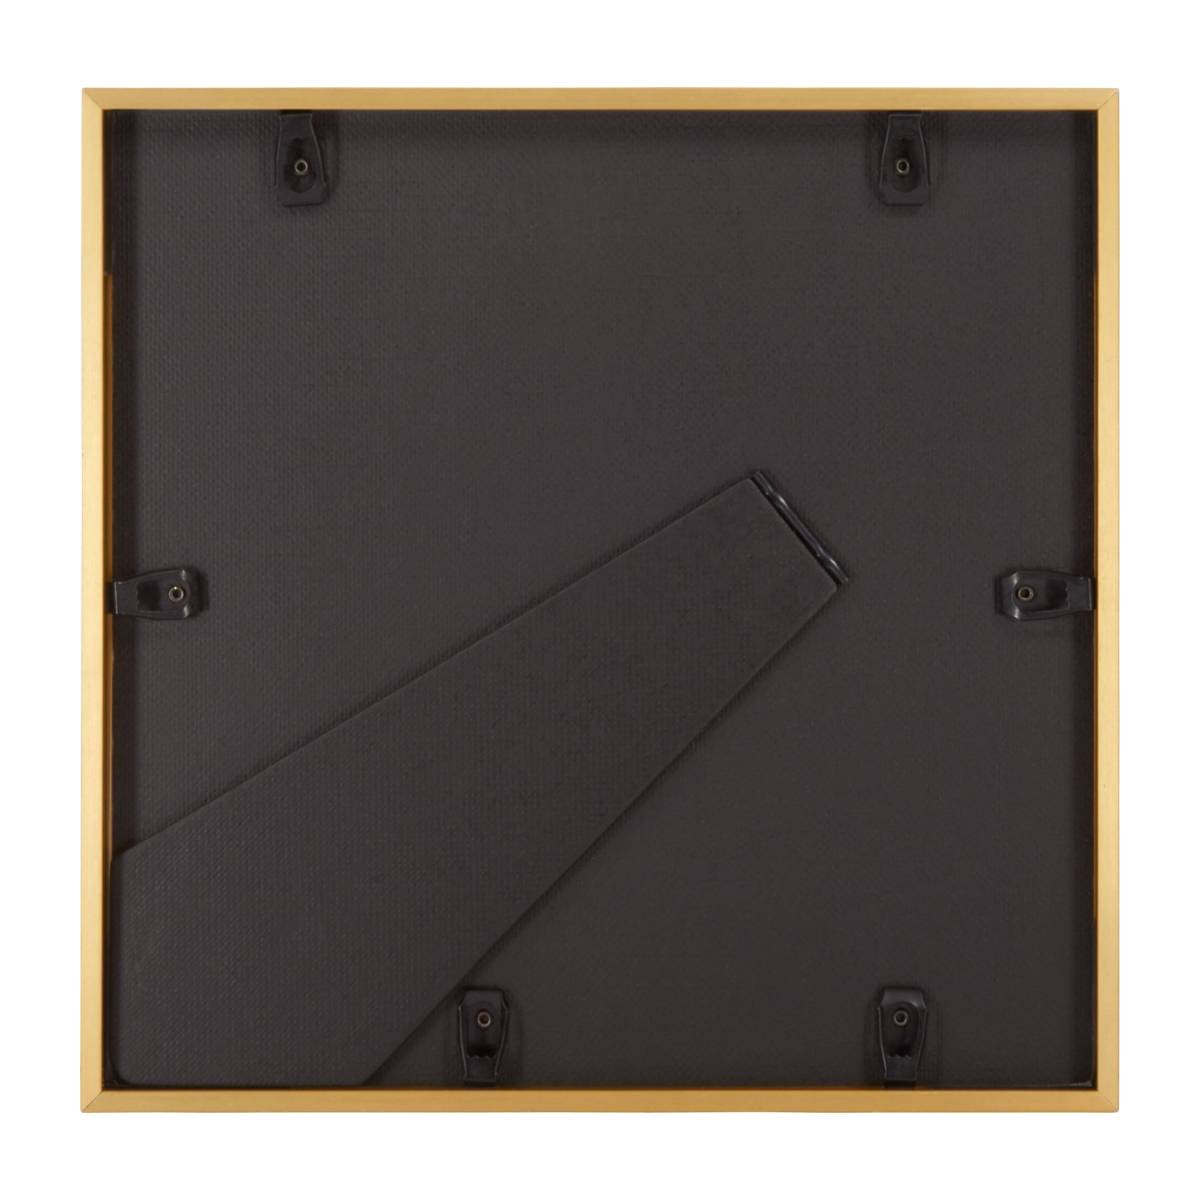 Photo frame made of metal 28X28, golden n°3